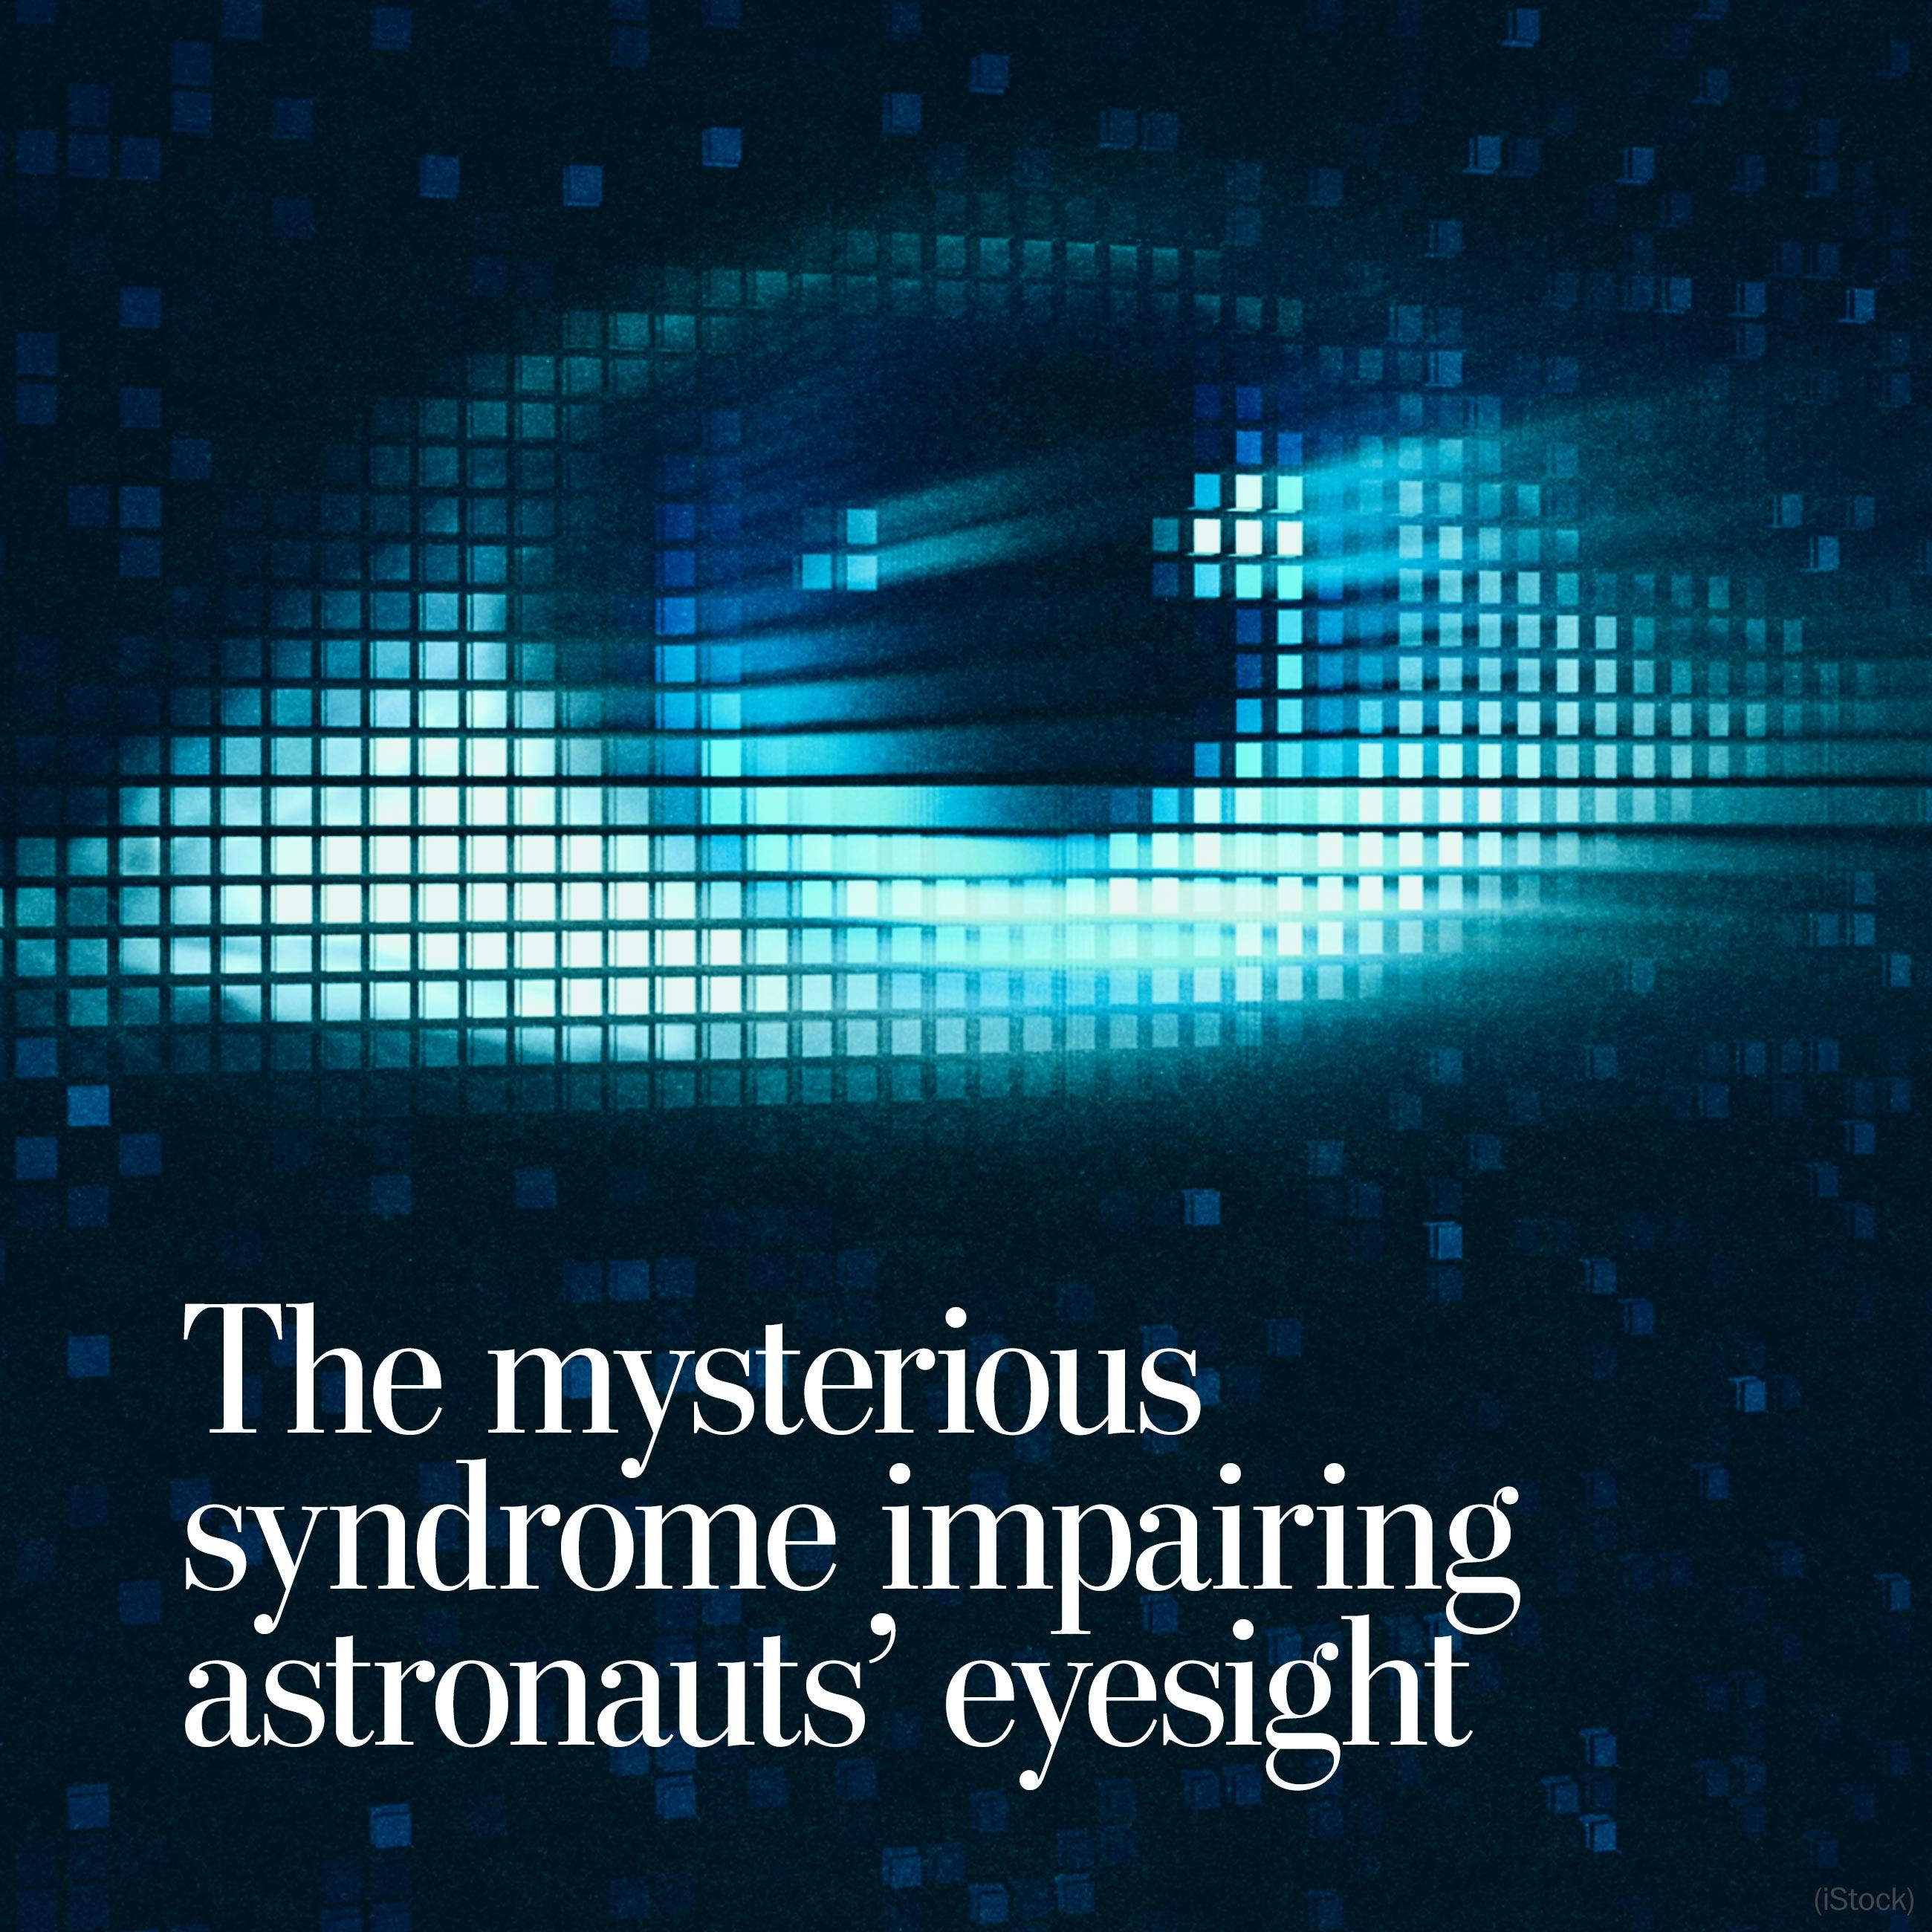 The mysterious syndrome impairing astronauts' eyesight